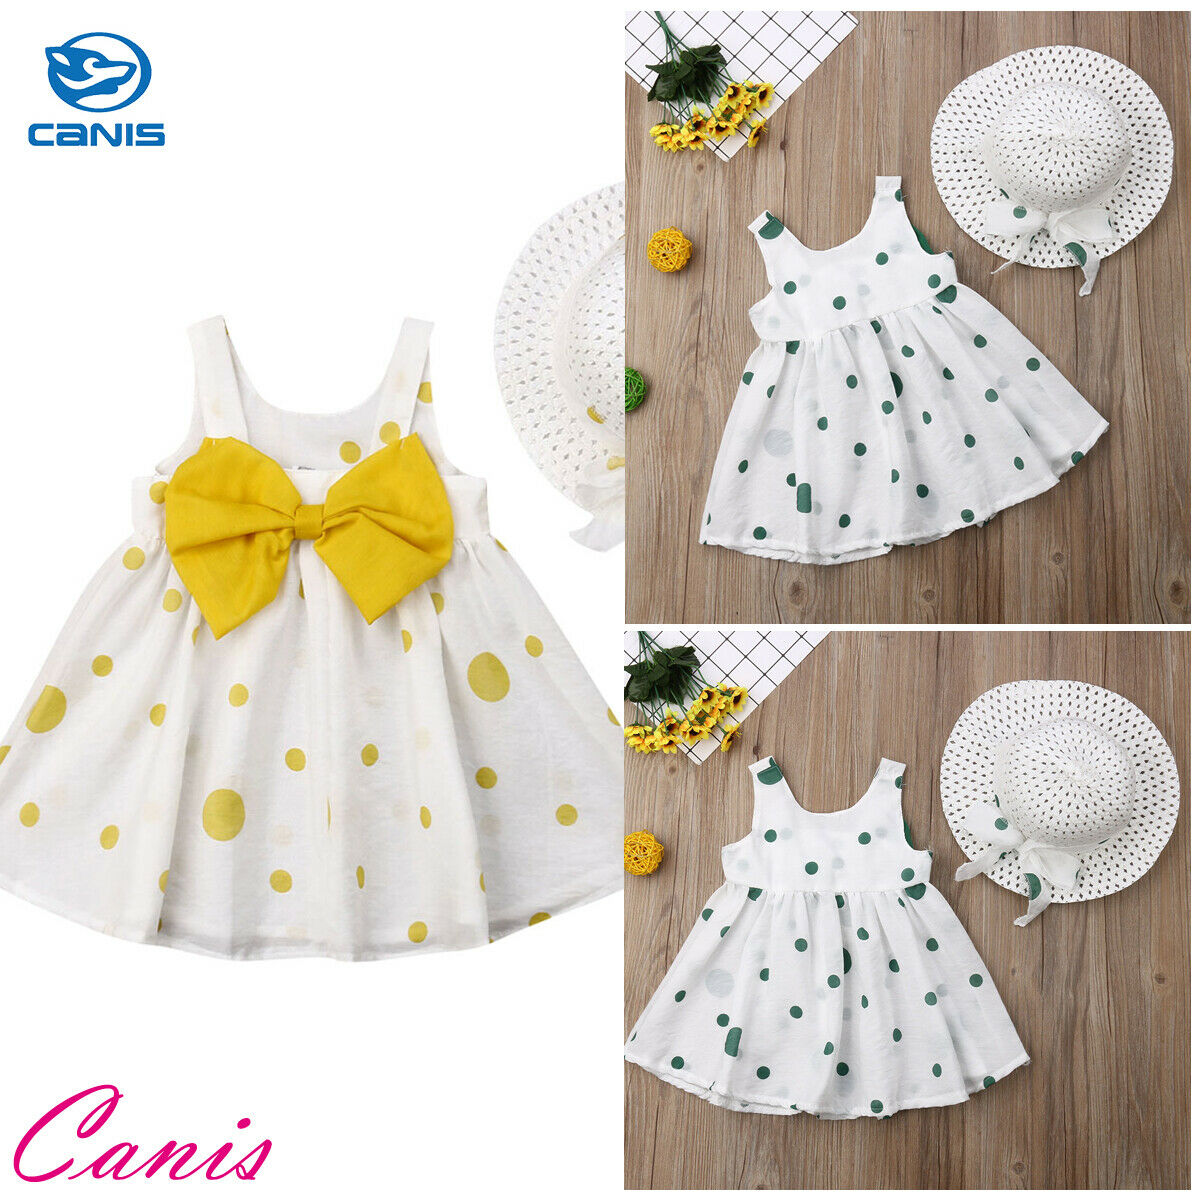 Newborn Dot Print Dresses Set baby clothes Princess new summer baby girls clothes With Hat Tutu Dress baby suit 1st birthday